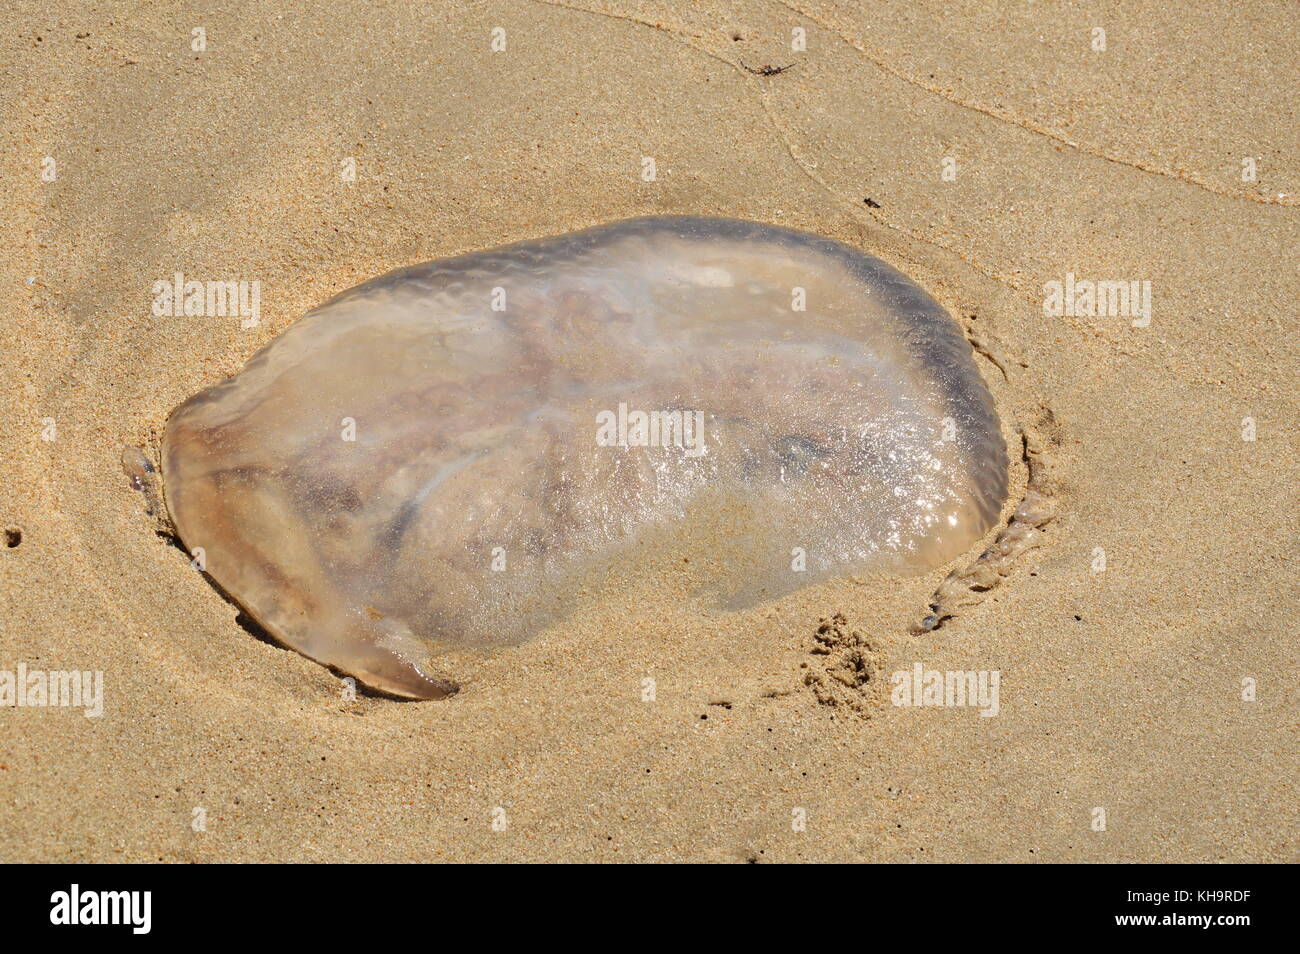 jellyfish strand on the beach - Stock Image